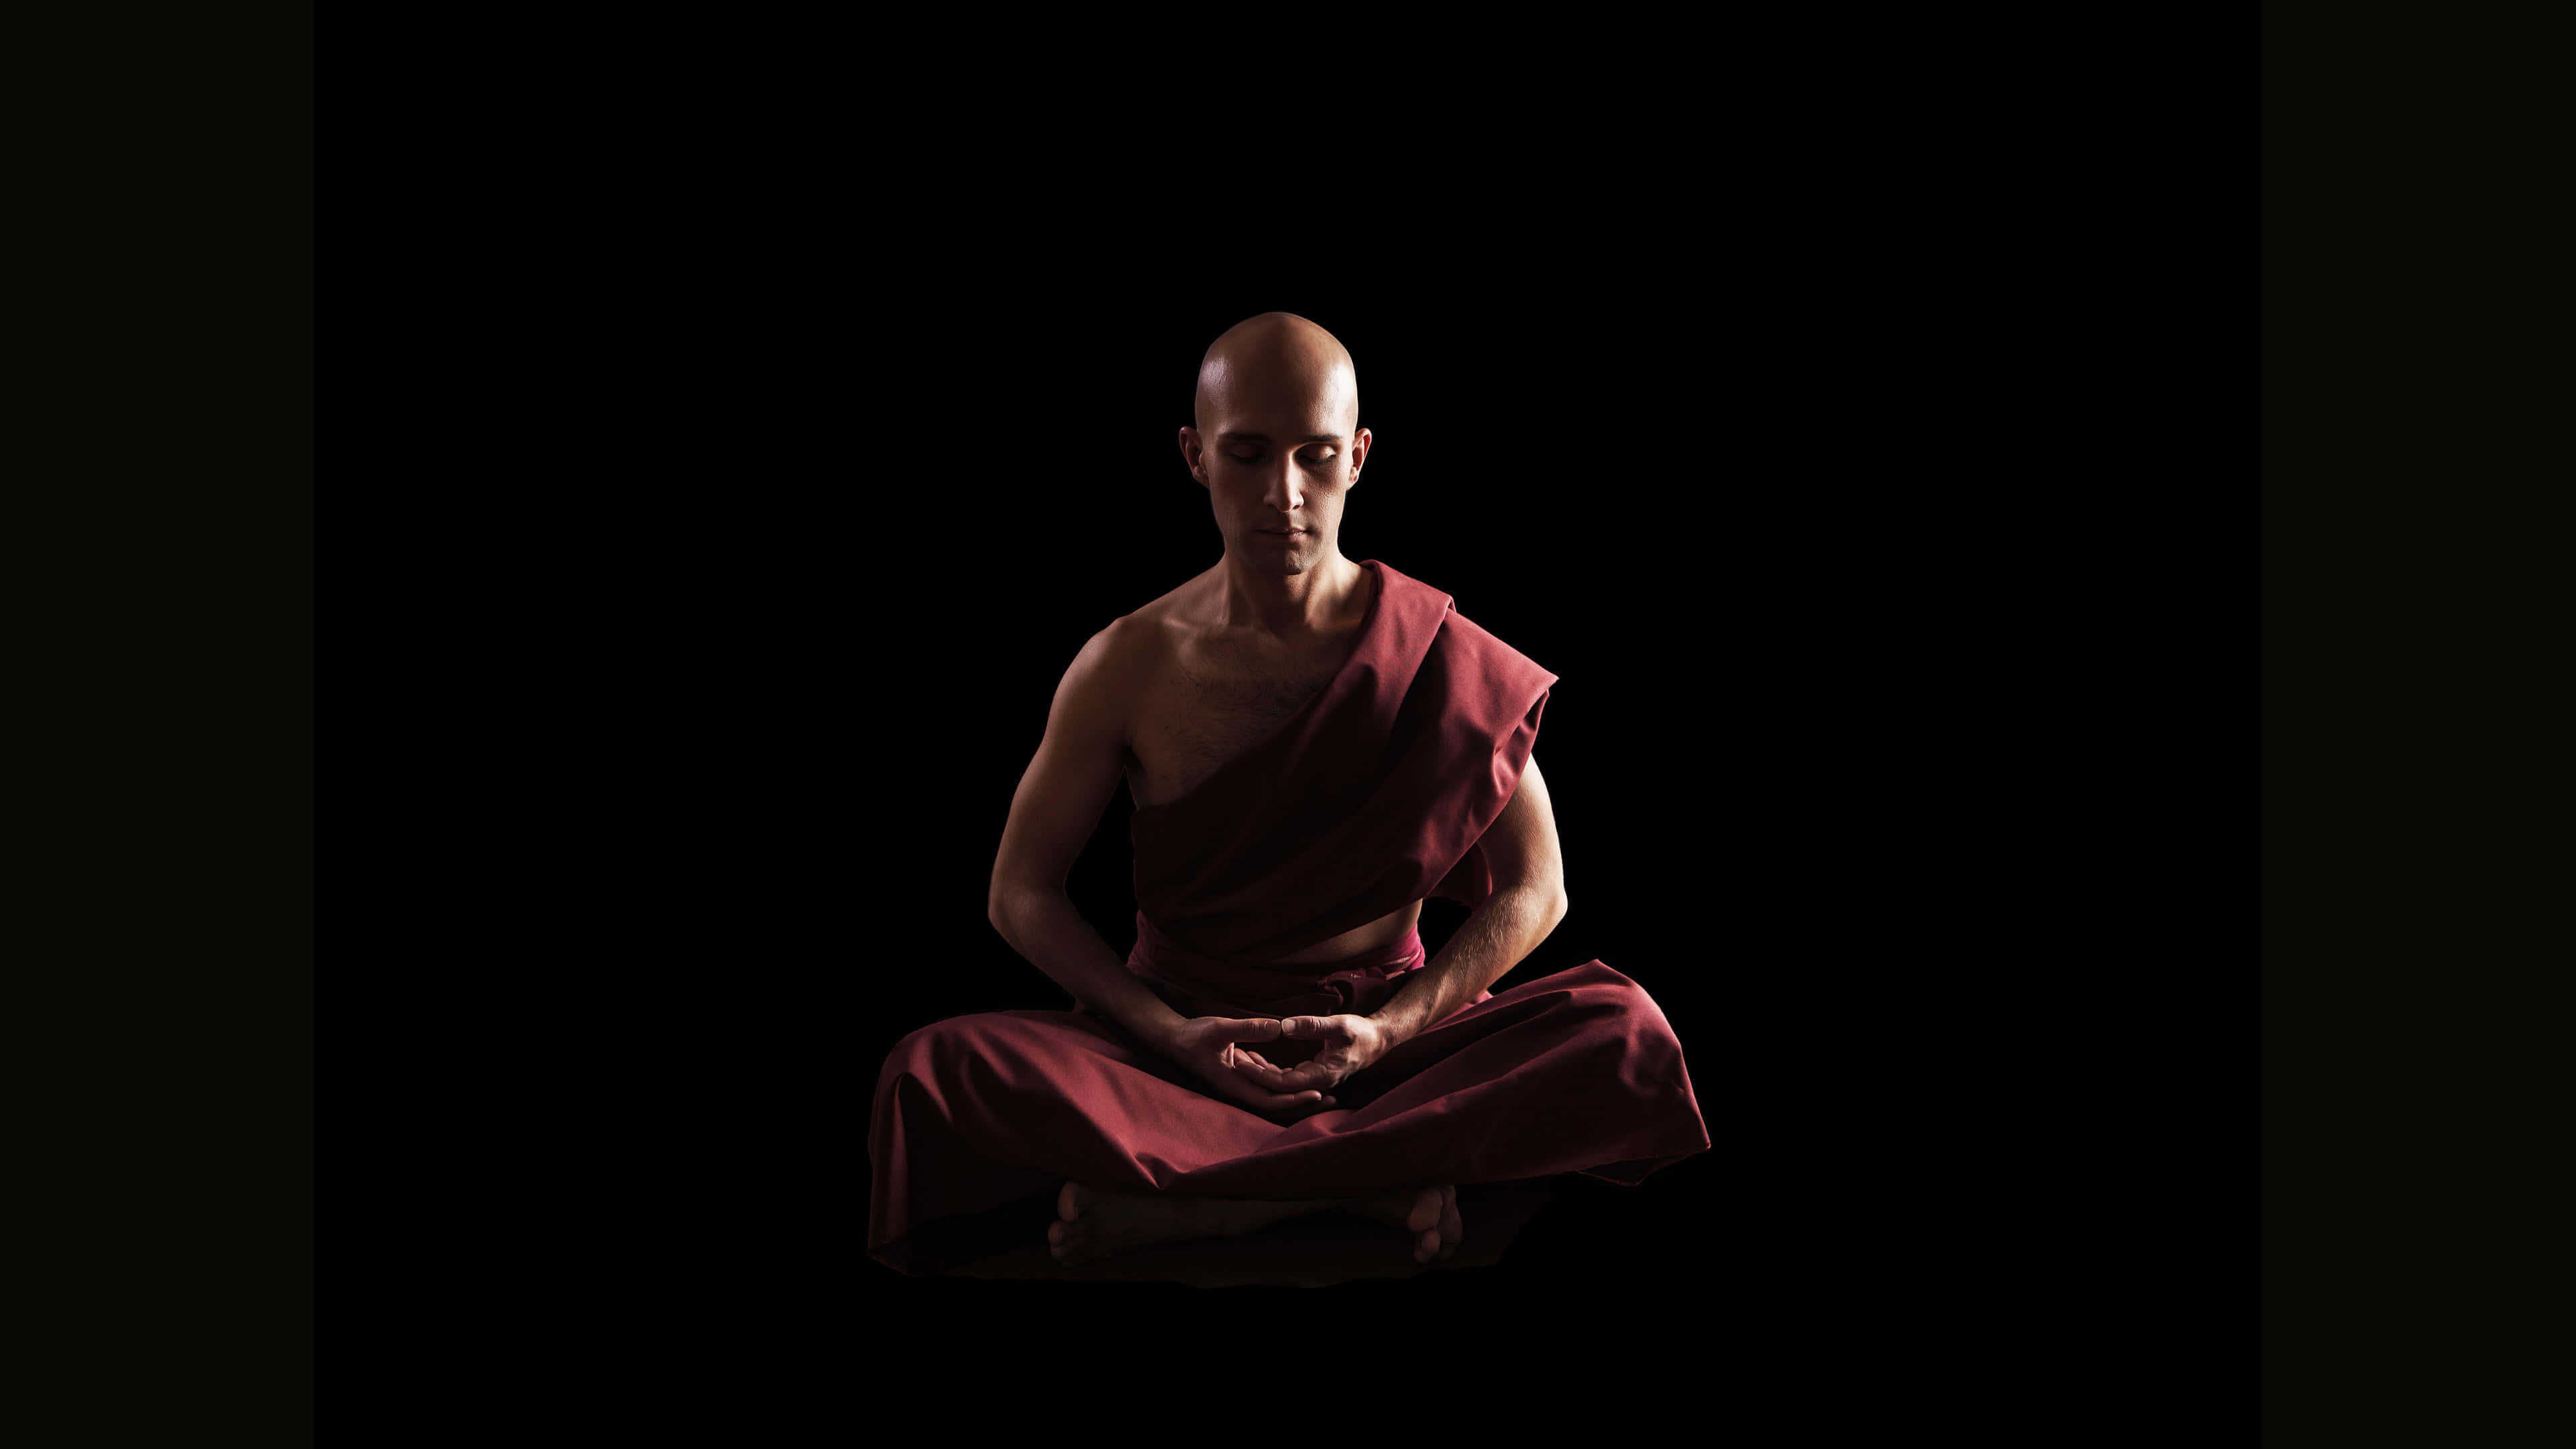 buddhist monk meditating uhd 4k wallpaper pixelz